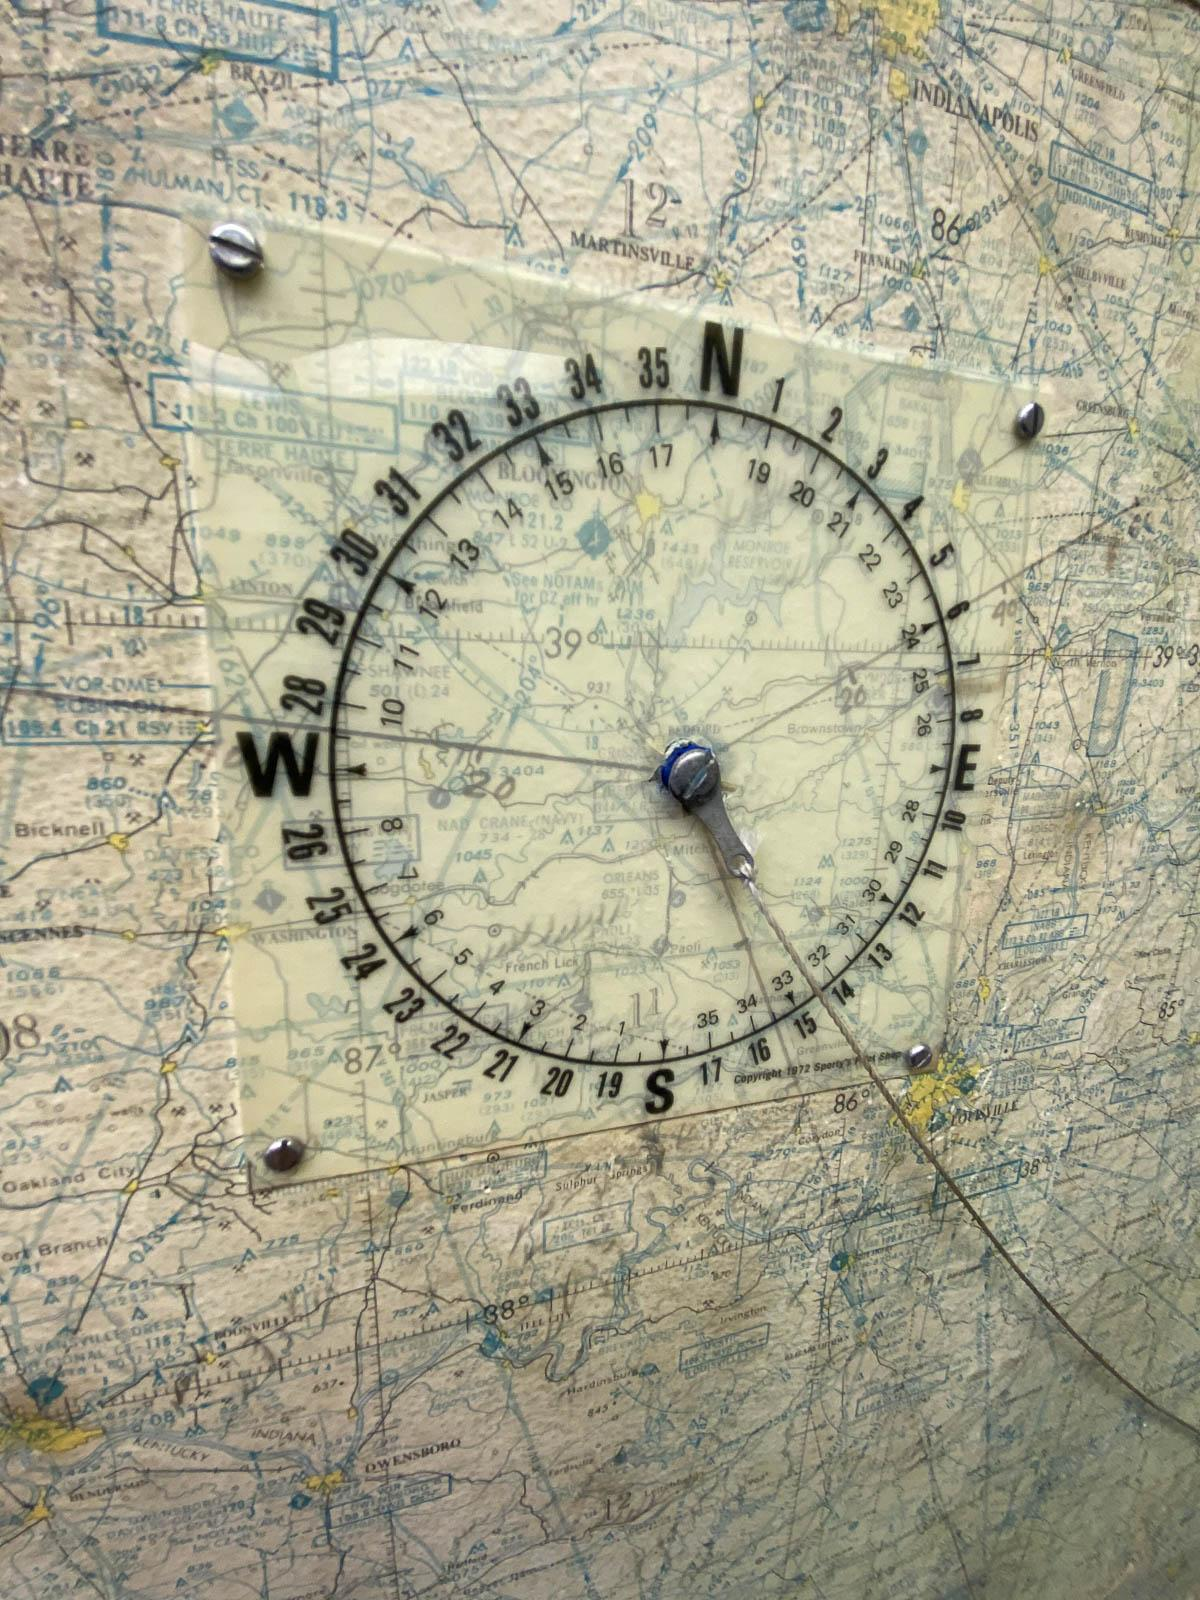 Compass rose for old-school flight planning